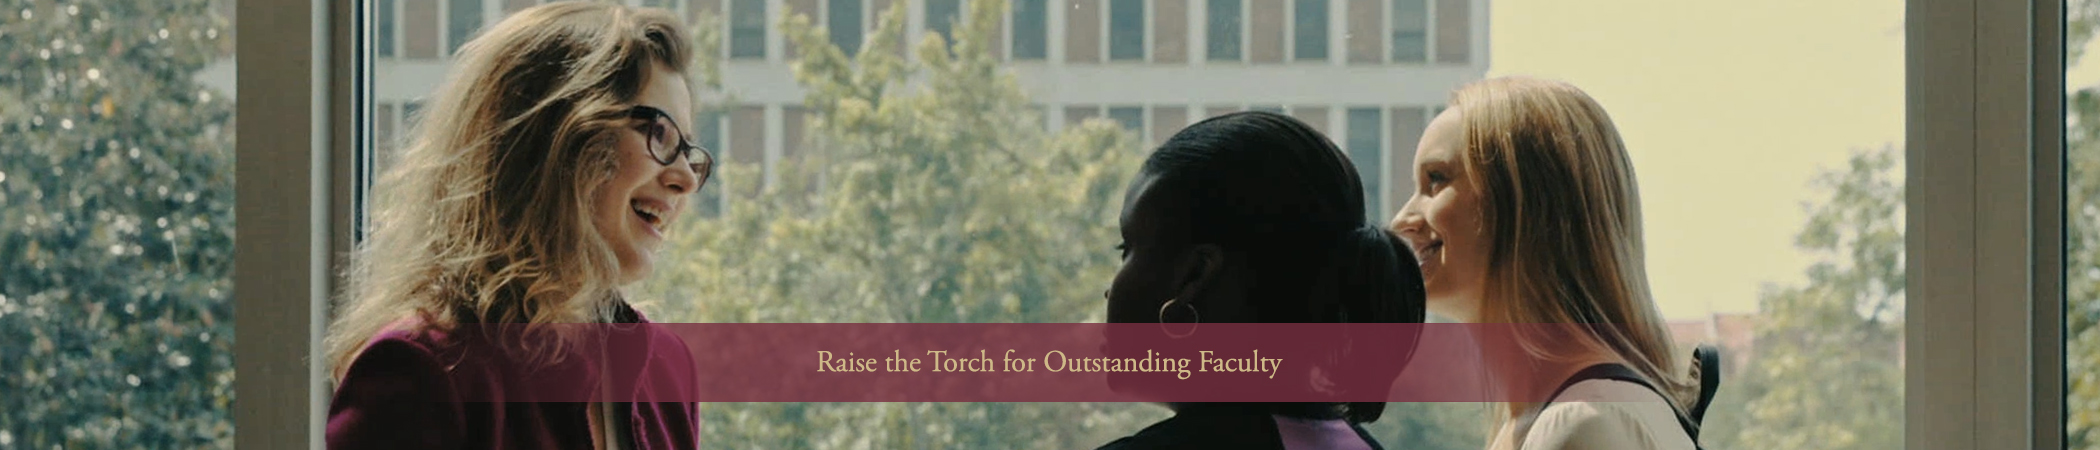 Raise the Torch for Outstanding Faculty